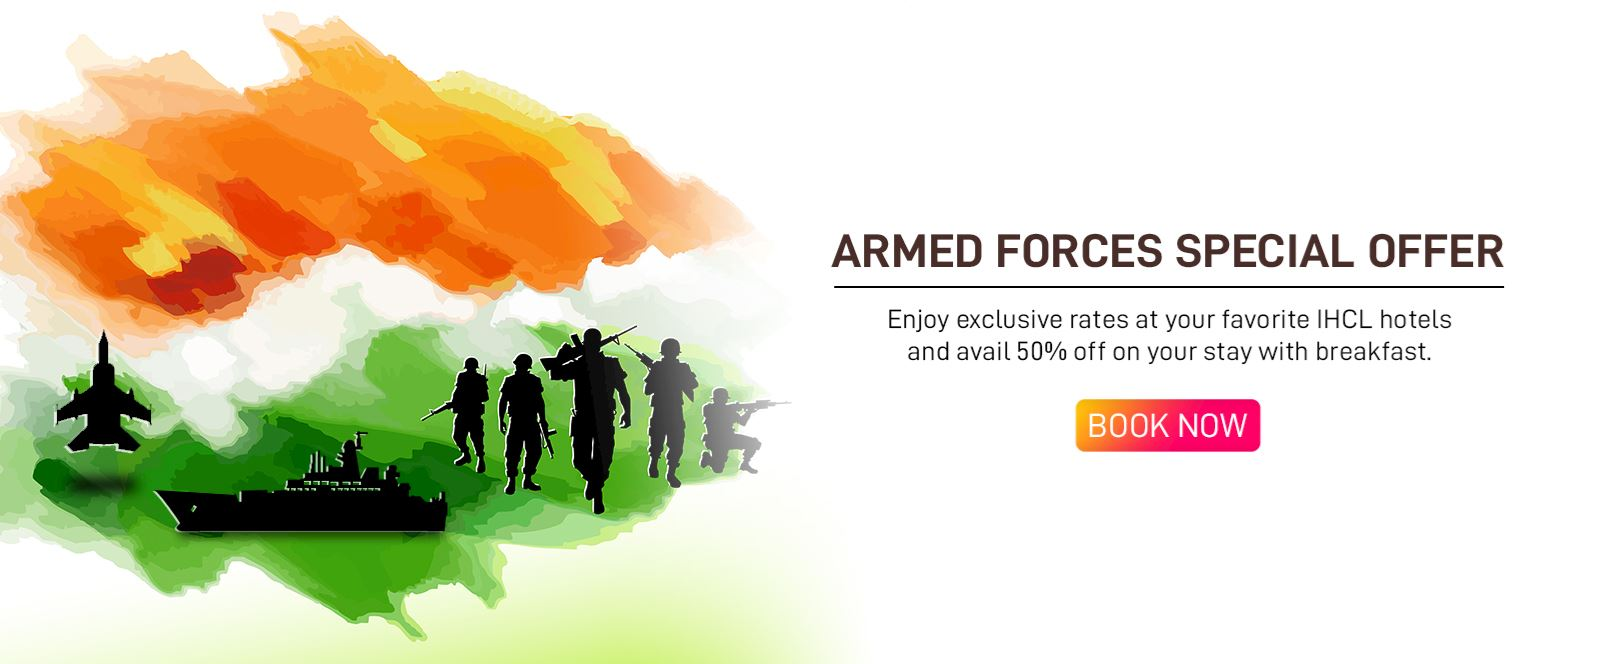 Armed Forces Offer